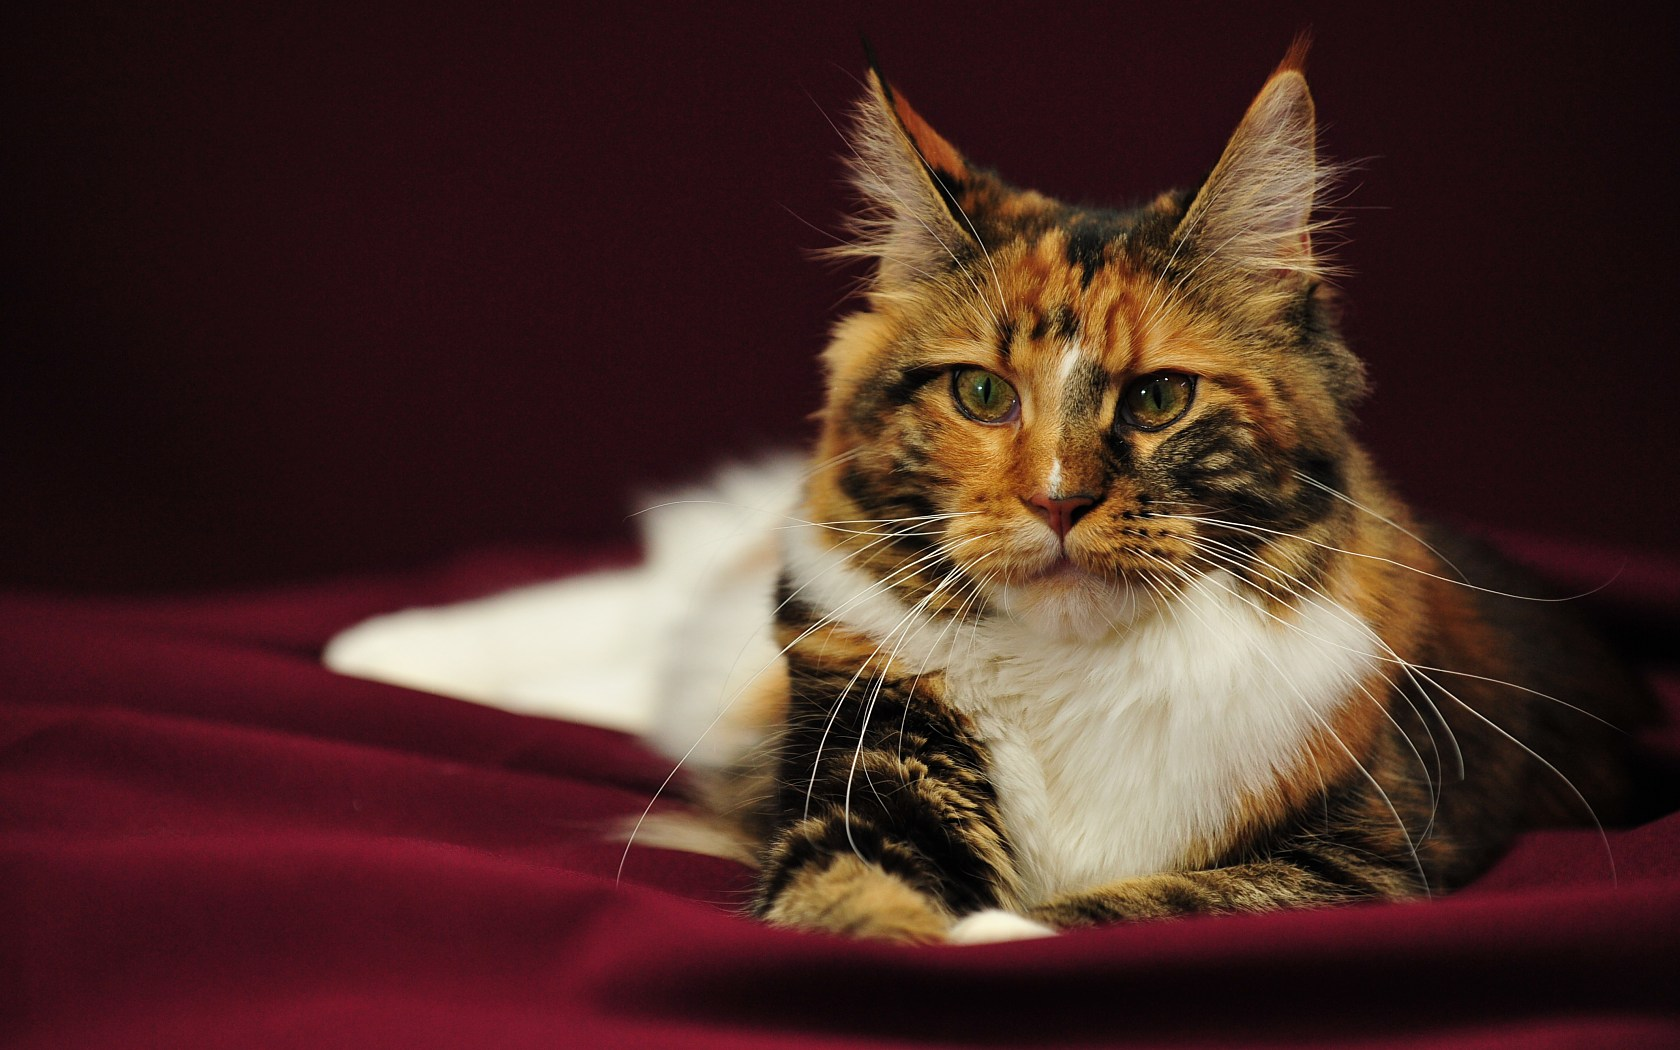 Tricolor Maine Coon  wallpaper